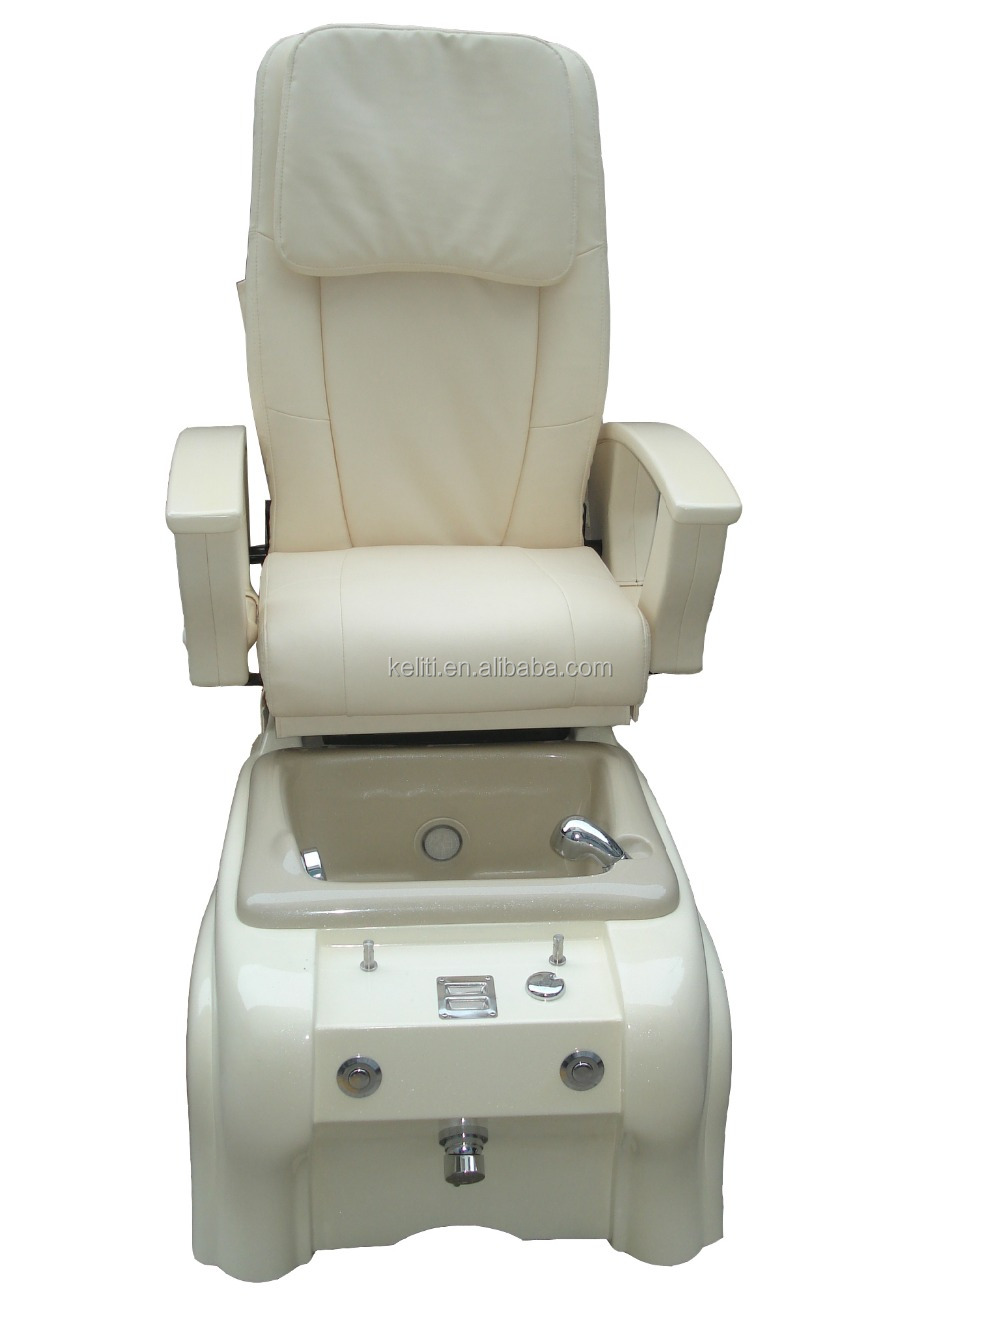 European Touch Pedicure Chair The Easiest Used Pedicure Chairs Fctiburonesrojos